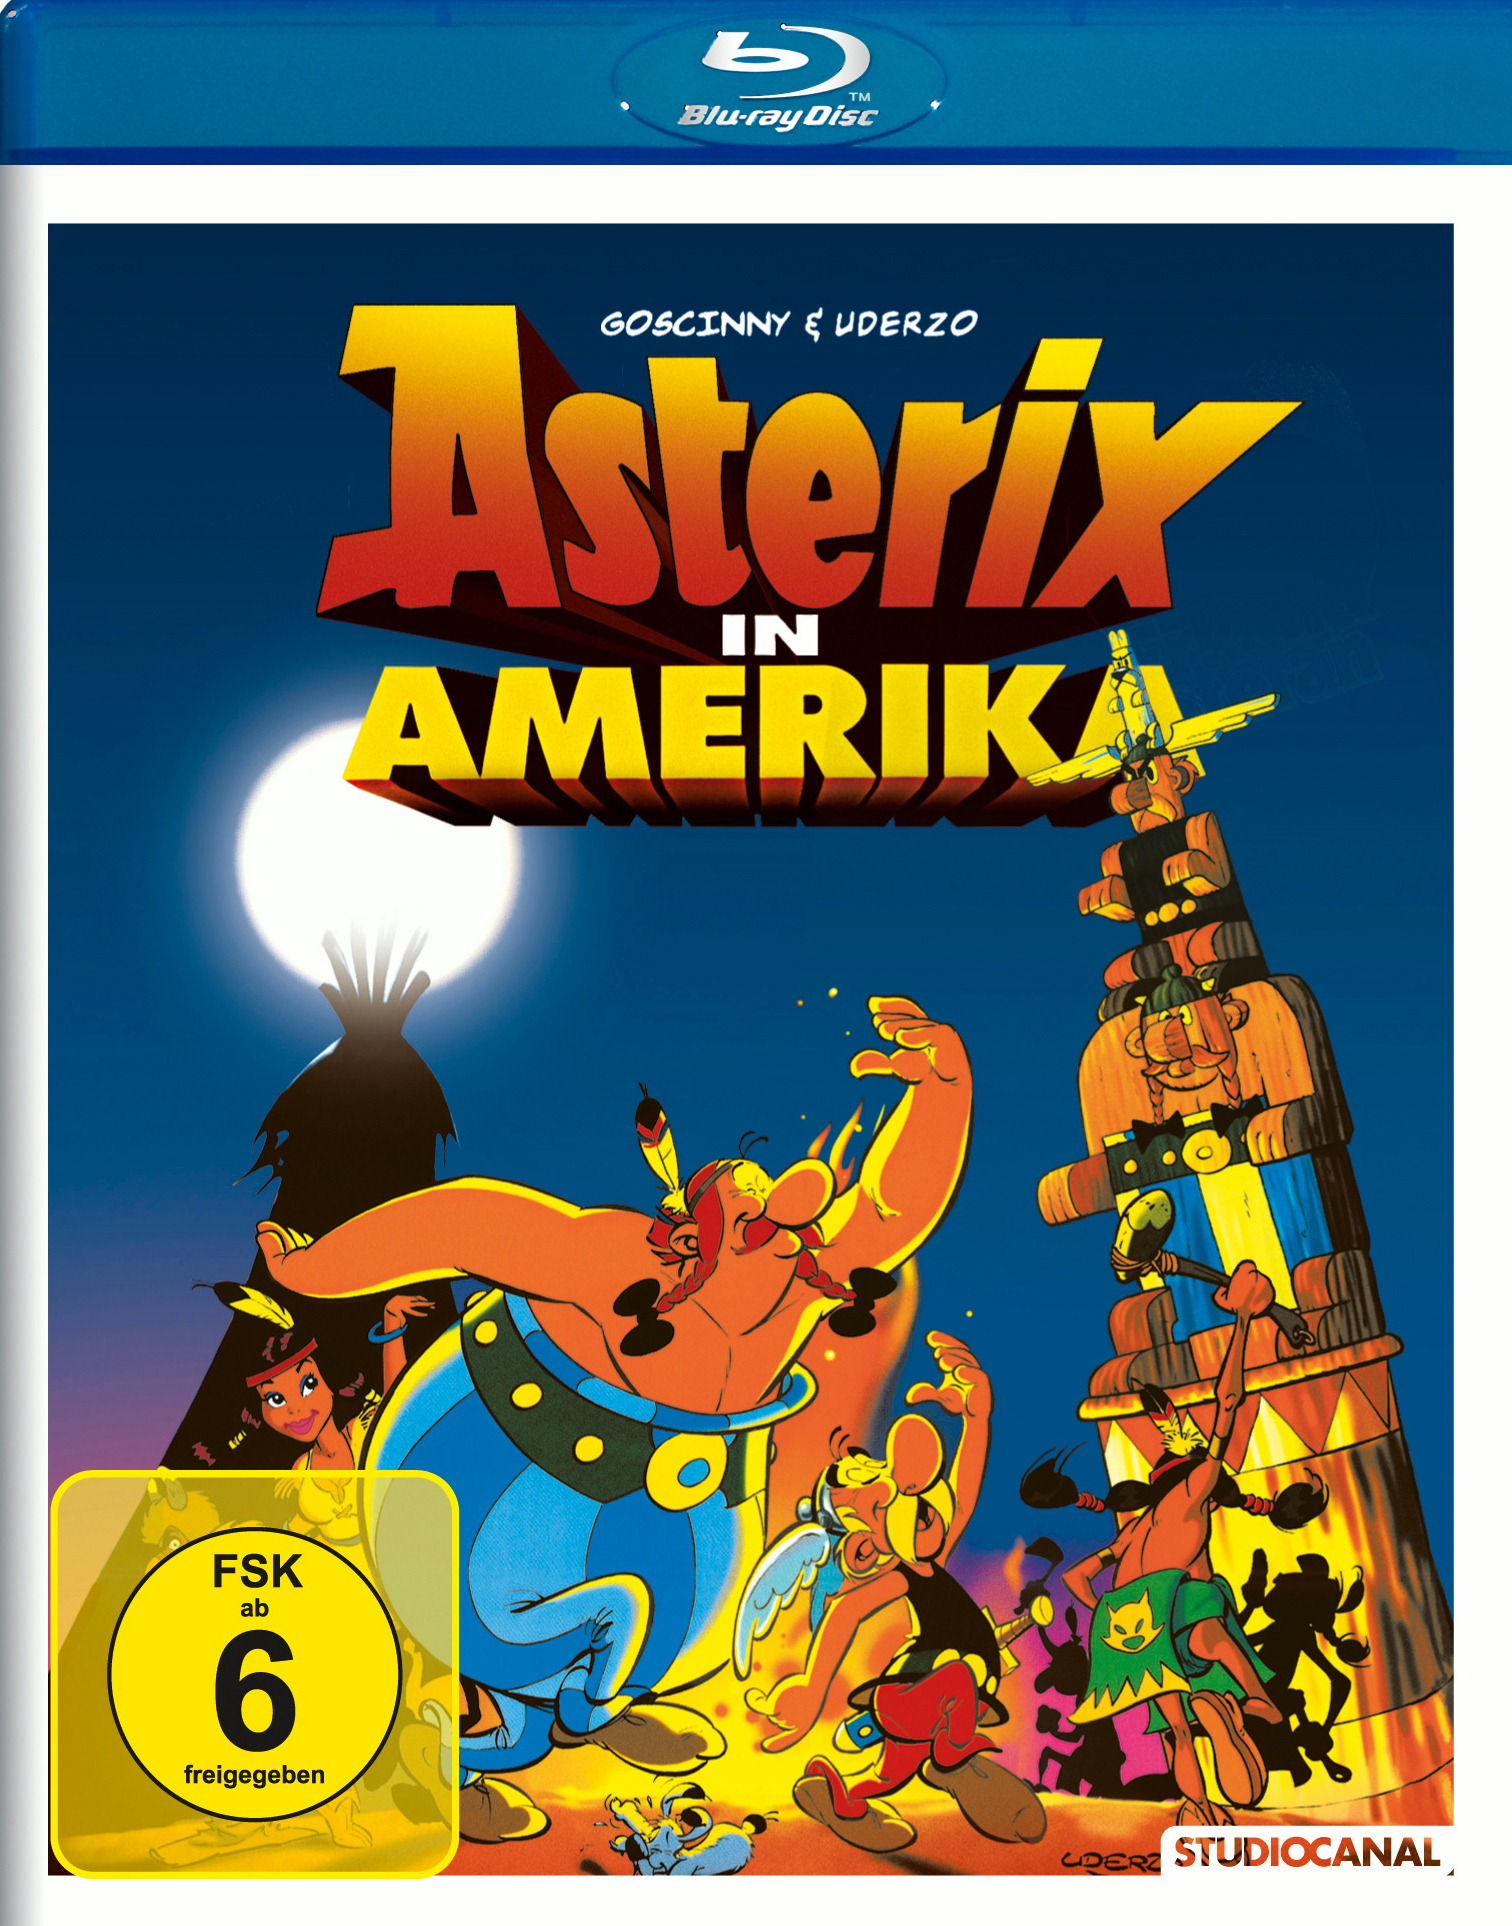 Asterix in Amerika Poster